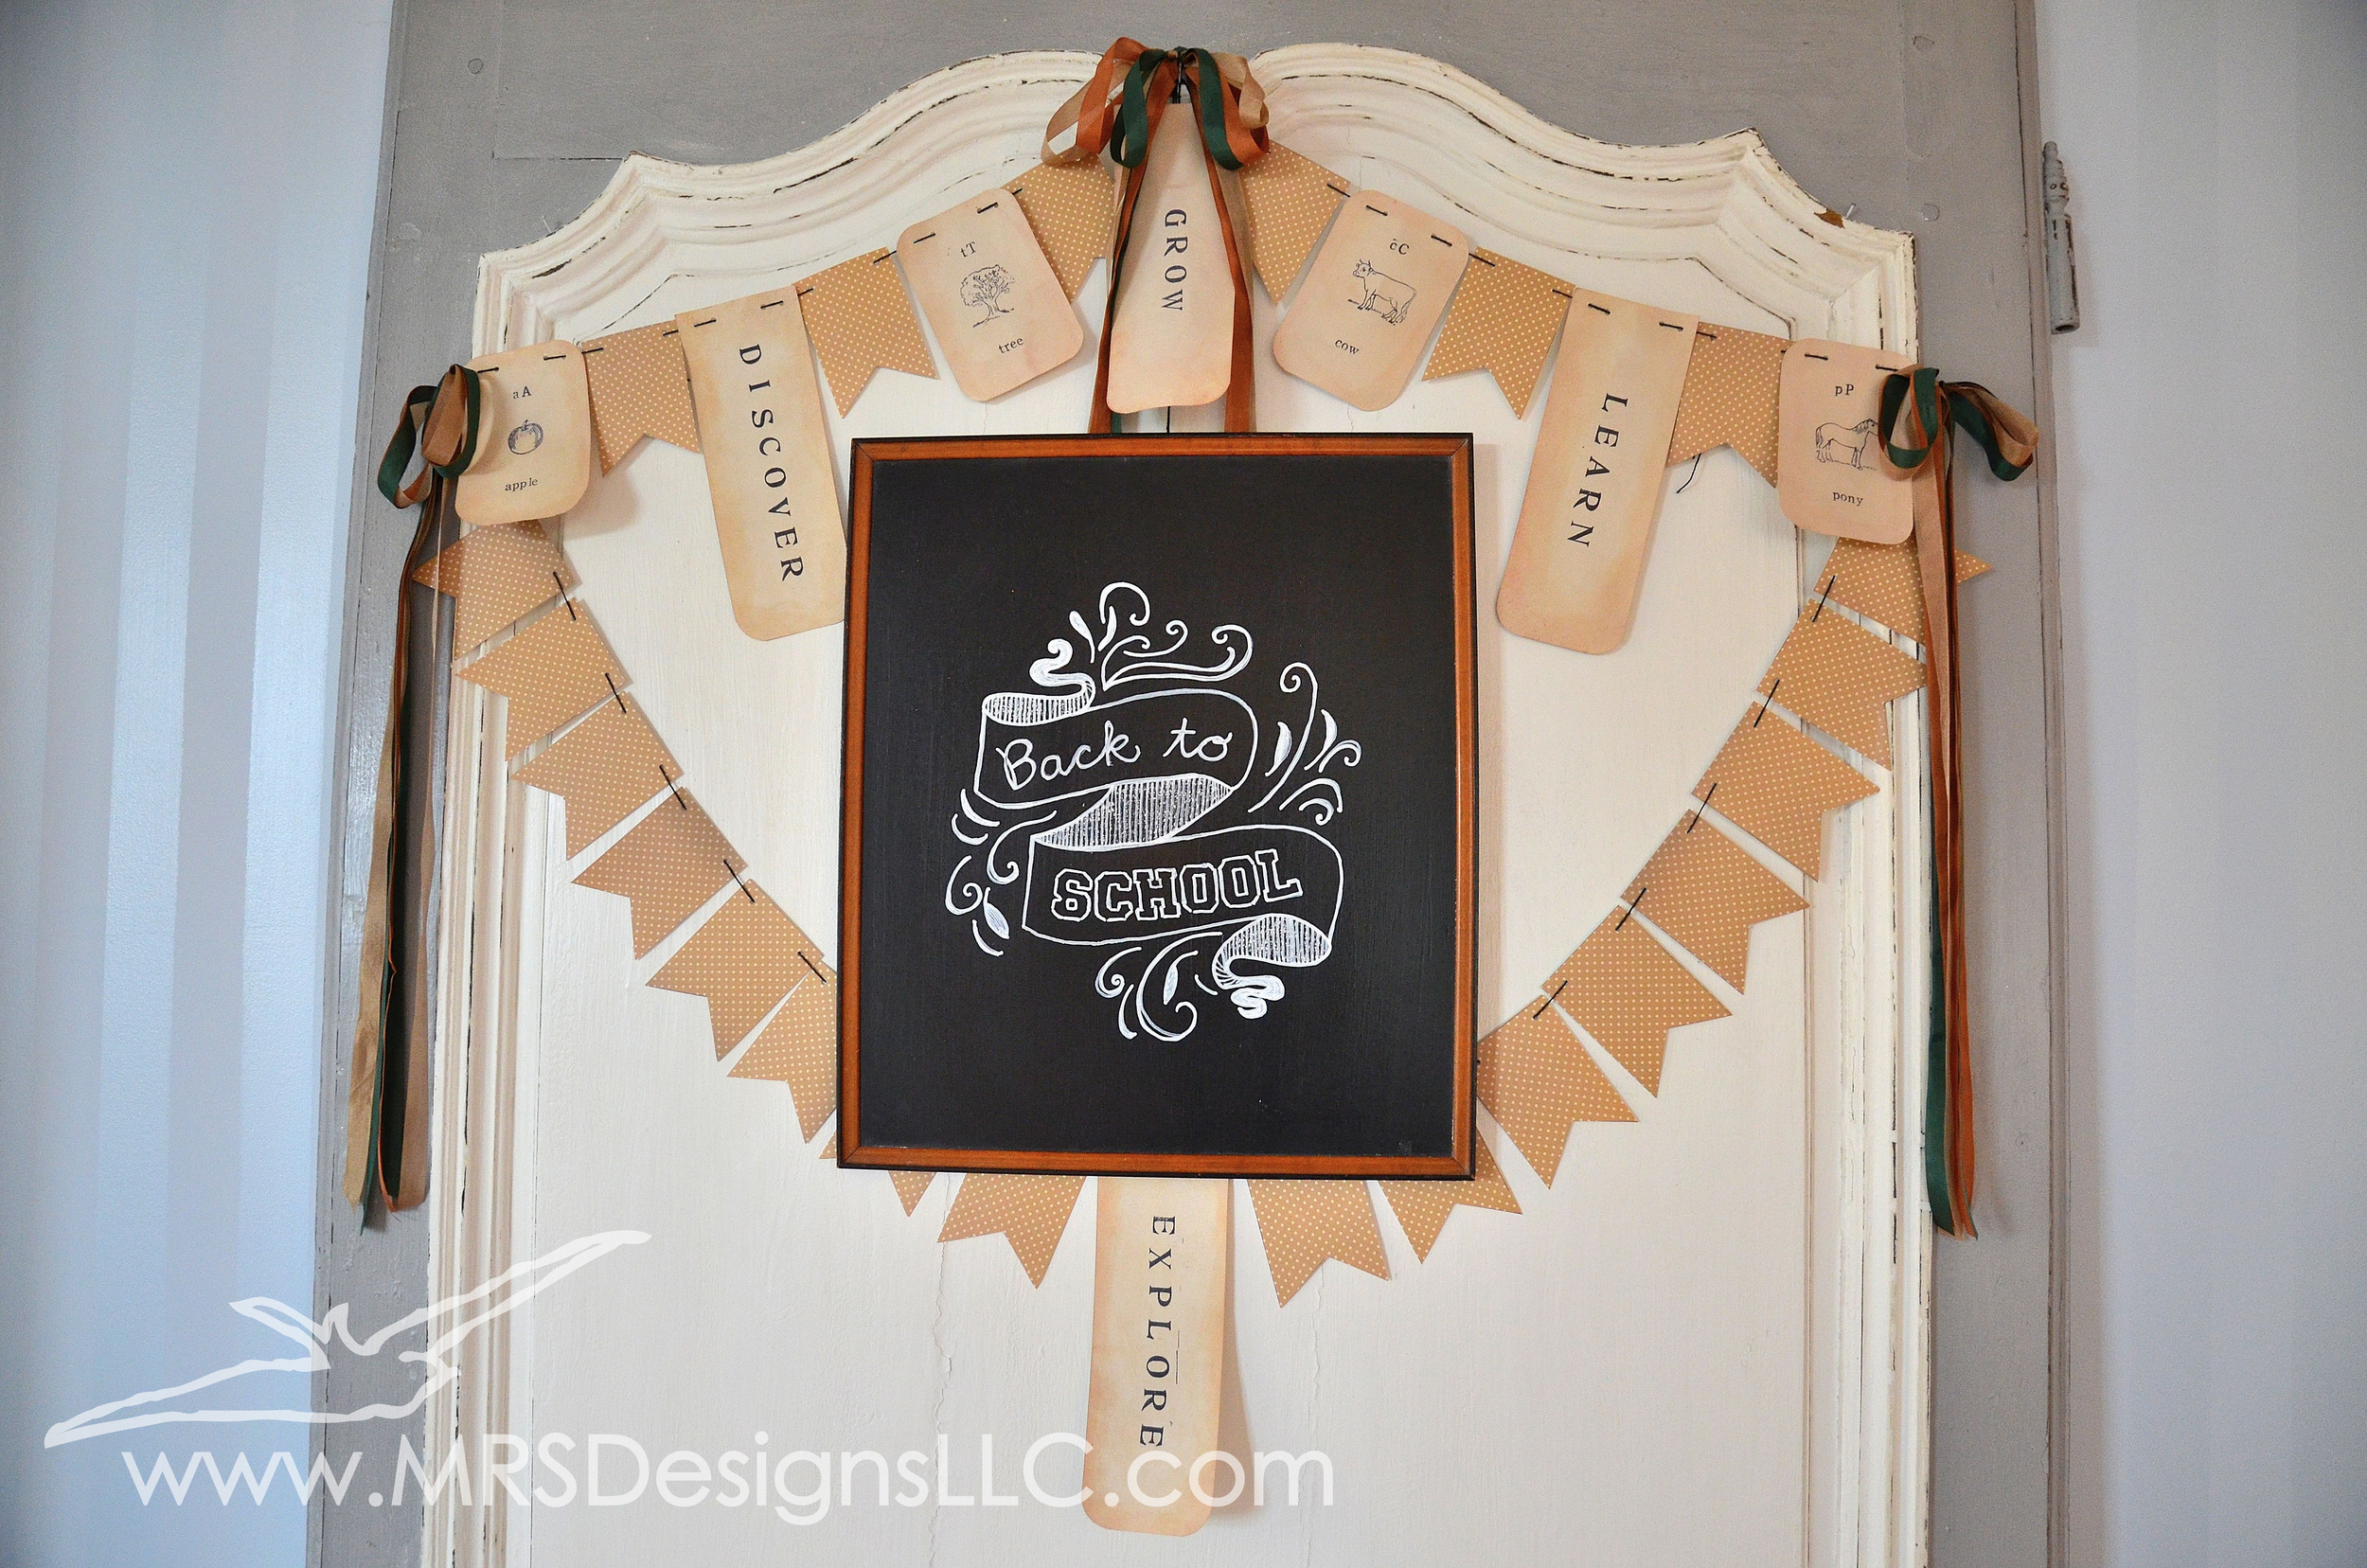 MRS Designs Blog - Refinishing a Vintage Door and Back To School Chalkboard Art with Bunting Banner